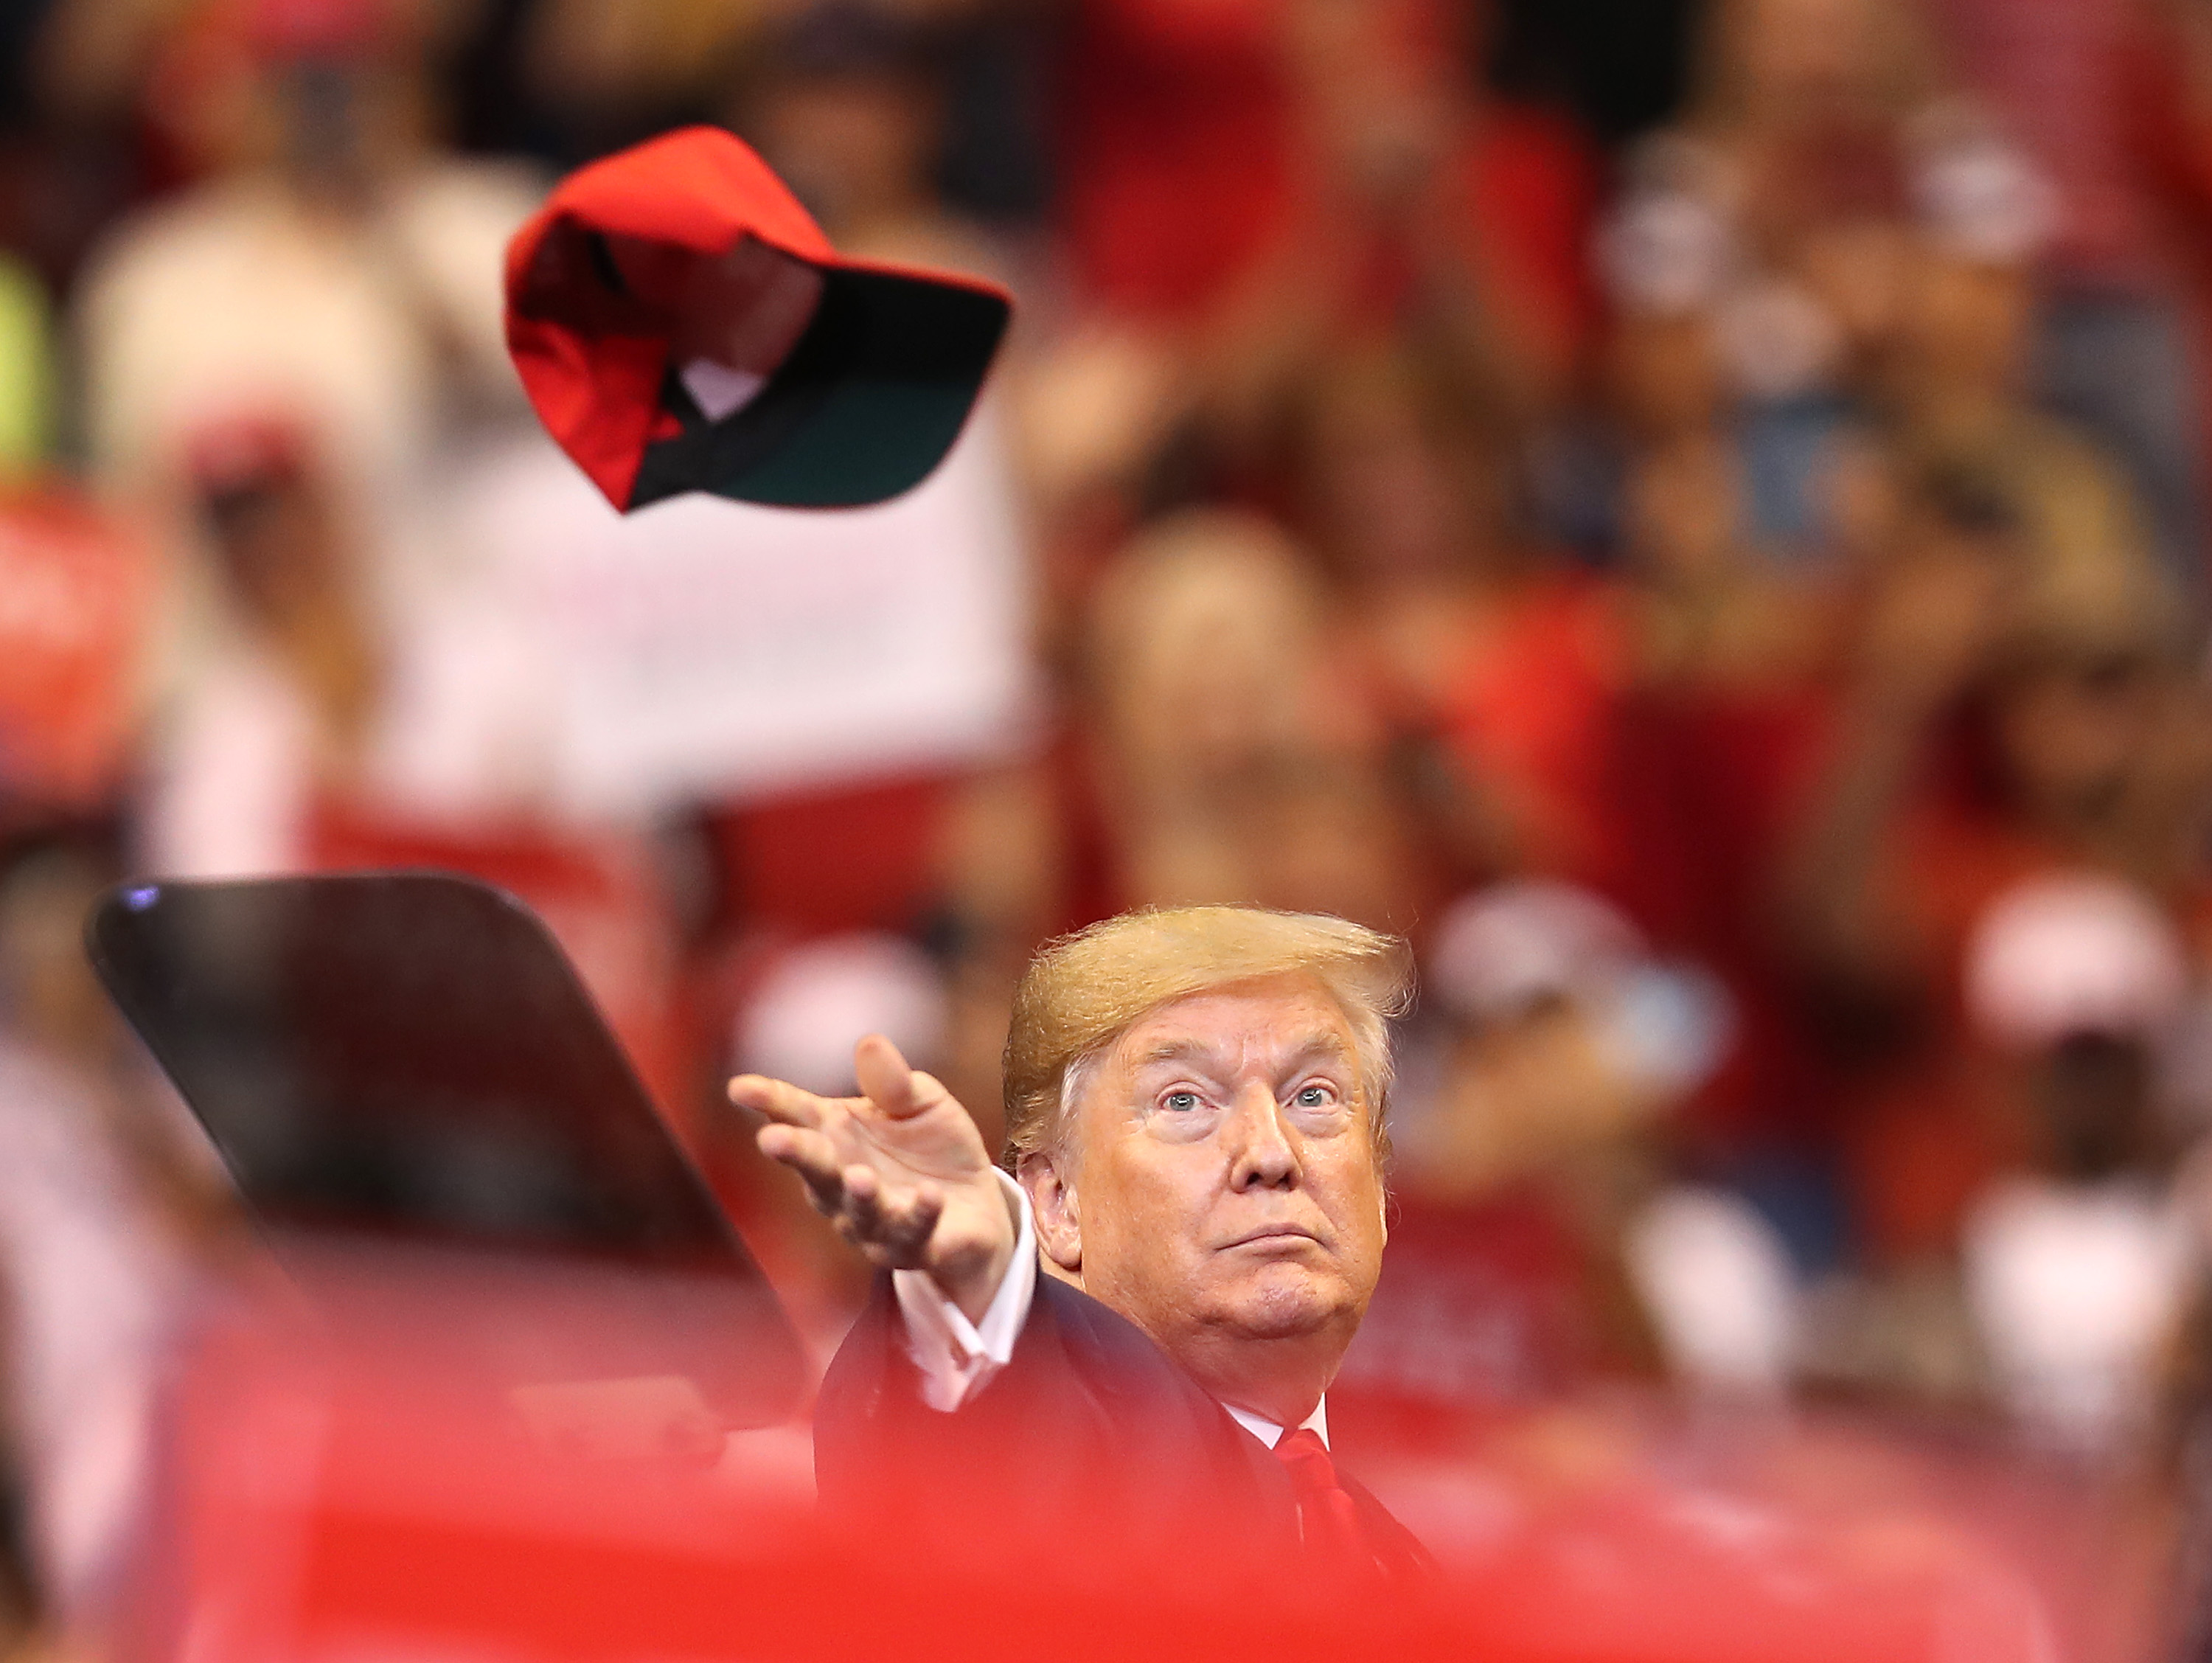 President Donald Trump tosses a hat into the crowd at a rally in Sunrise, Florida in November 2019.